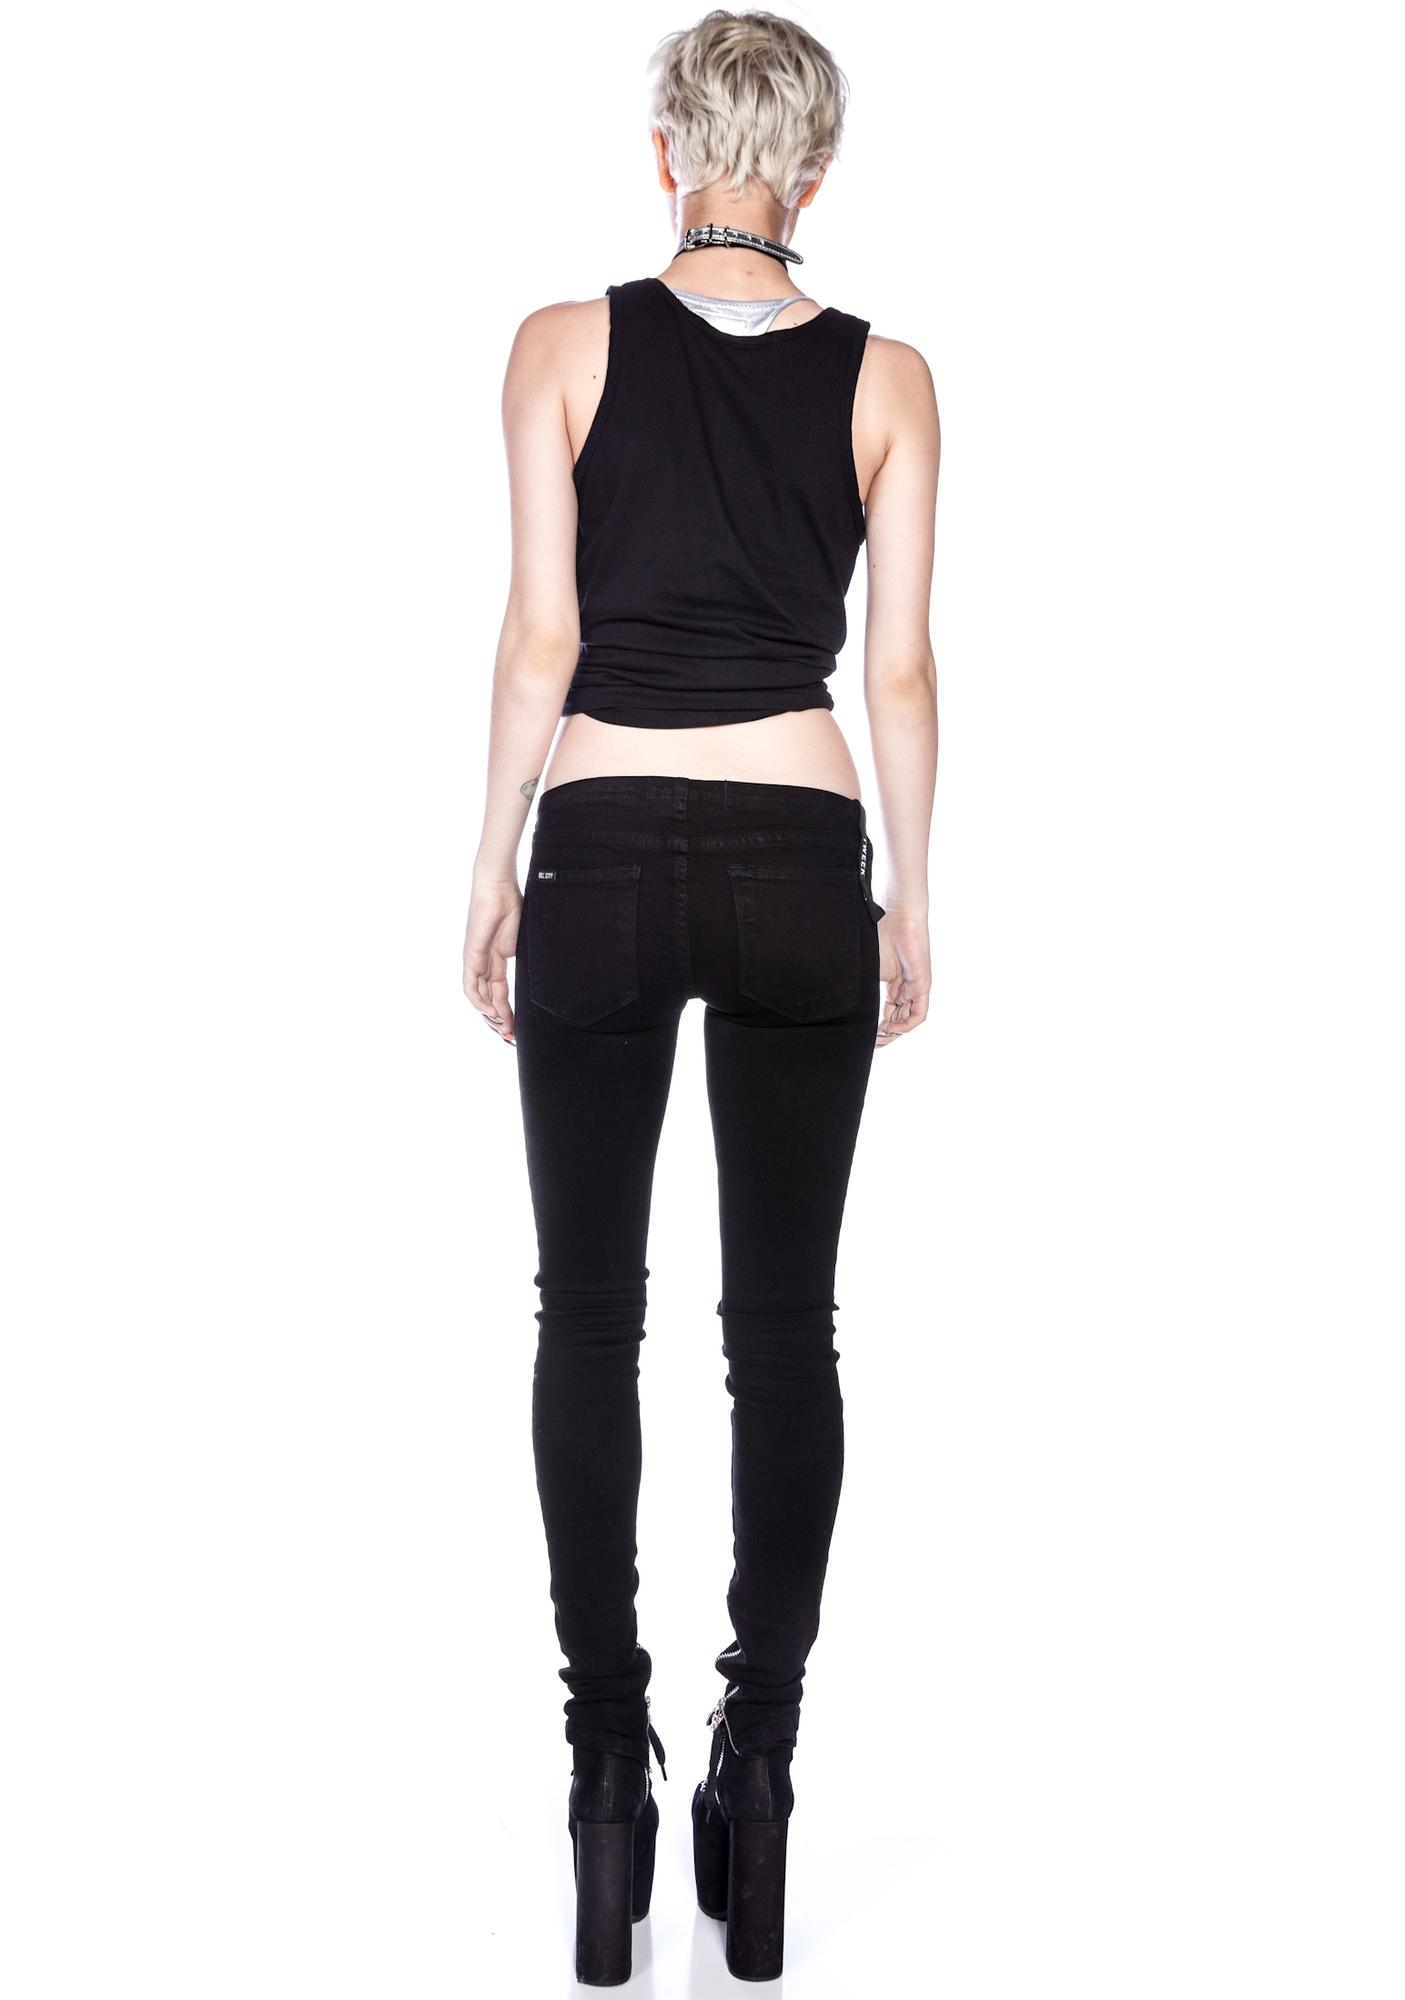 Kill City Tweek-Crack Attack Super Low Rise Stretch Twill Pants